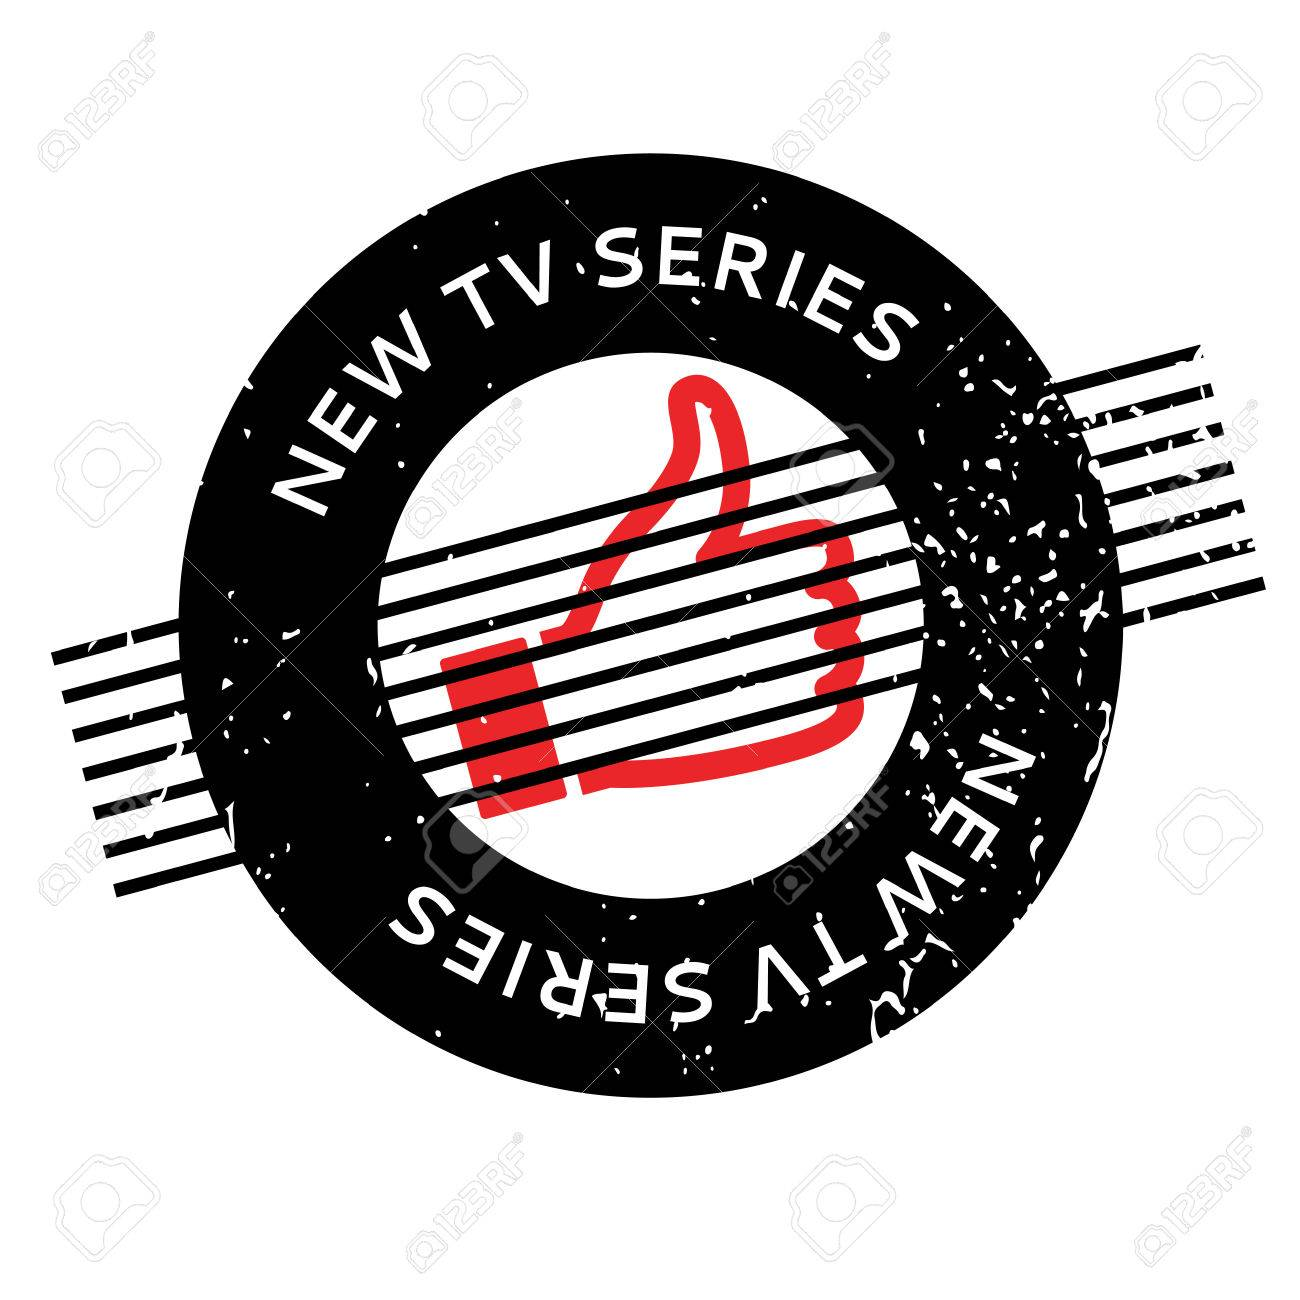 New Tv Series rubber stamp - 77773366